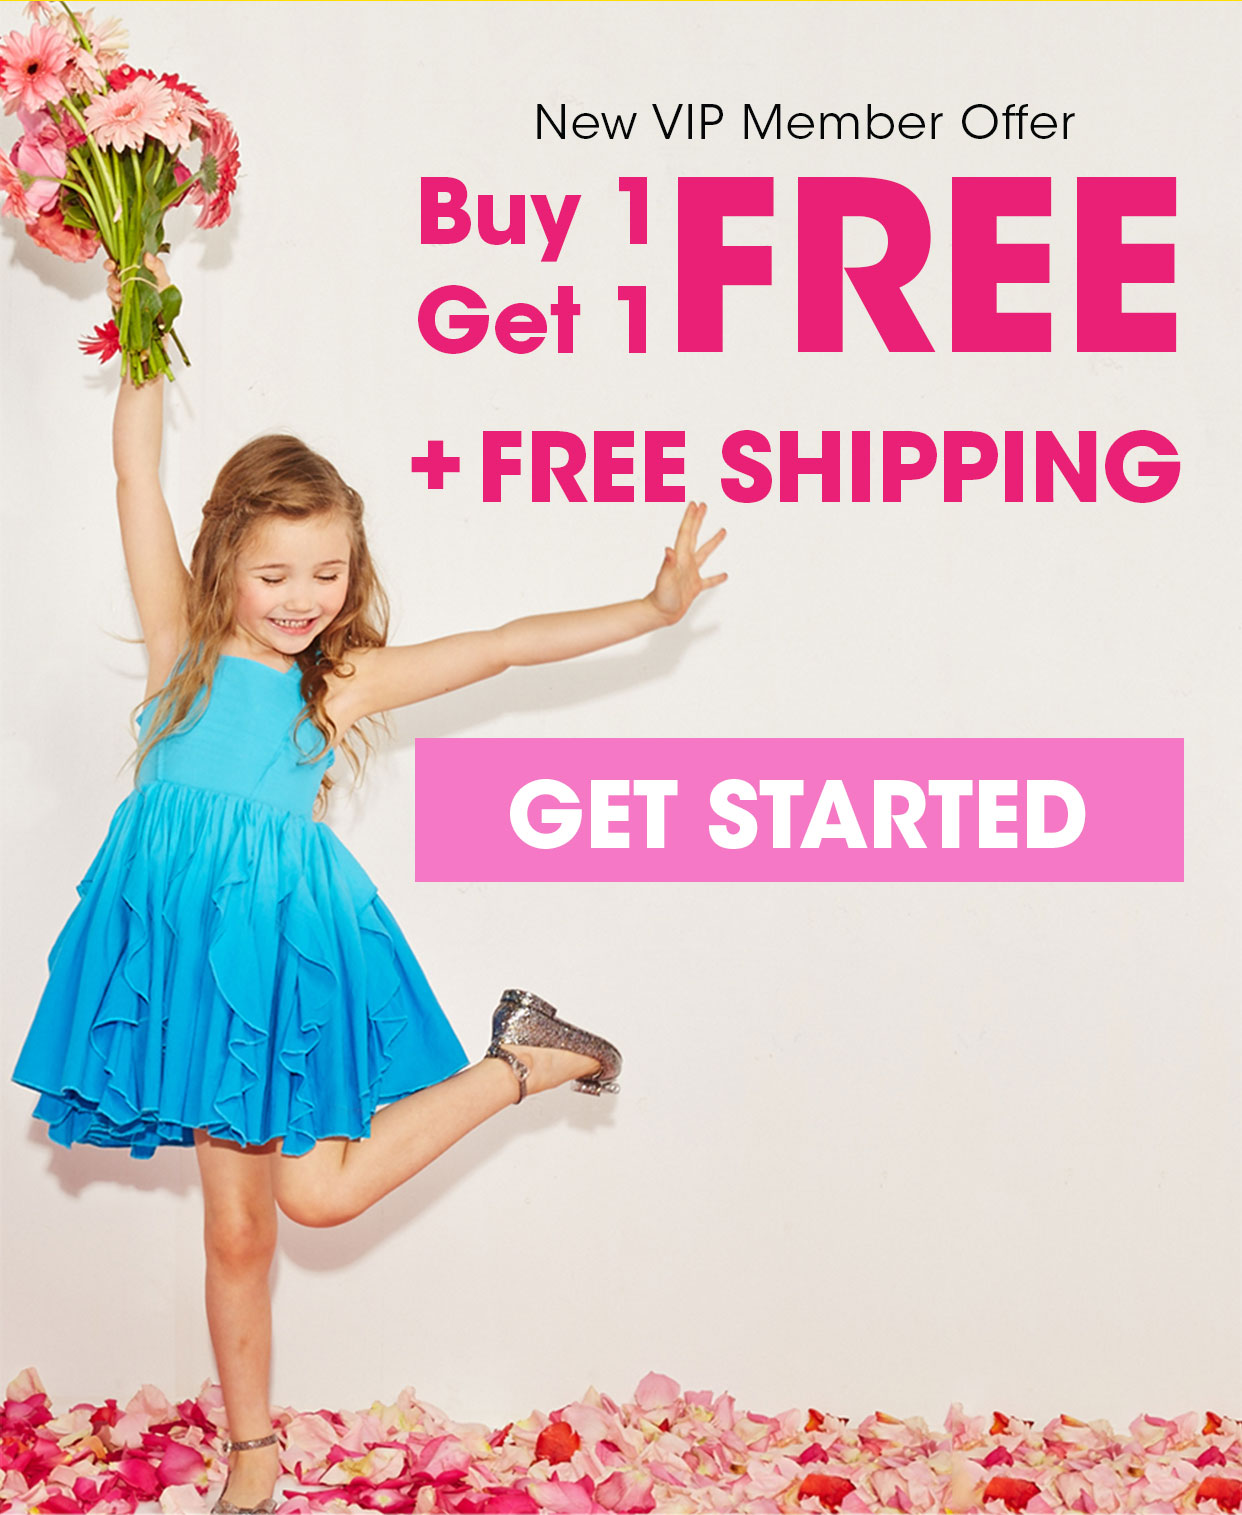 New VIP Member Exclusive! Buy 1, Get 1 Free Plus Free Shipping